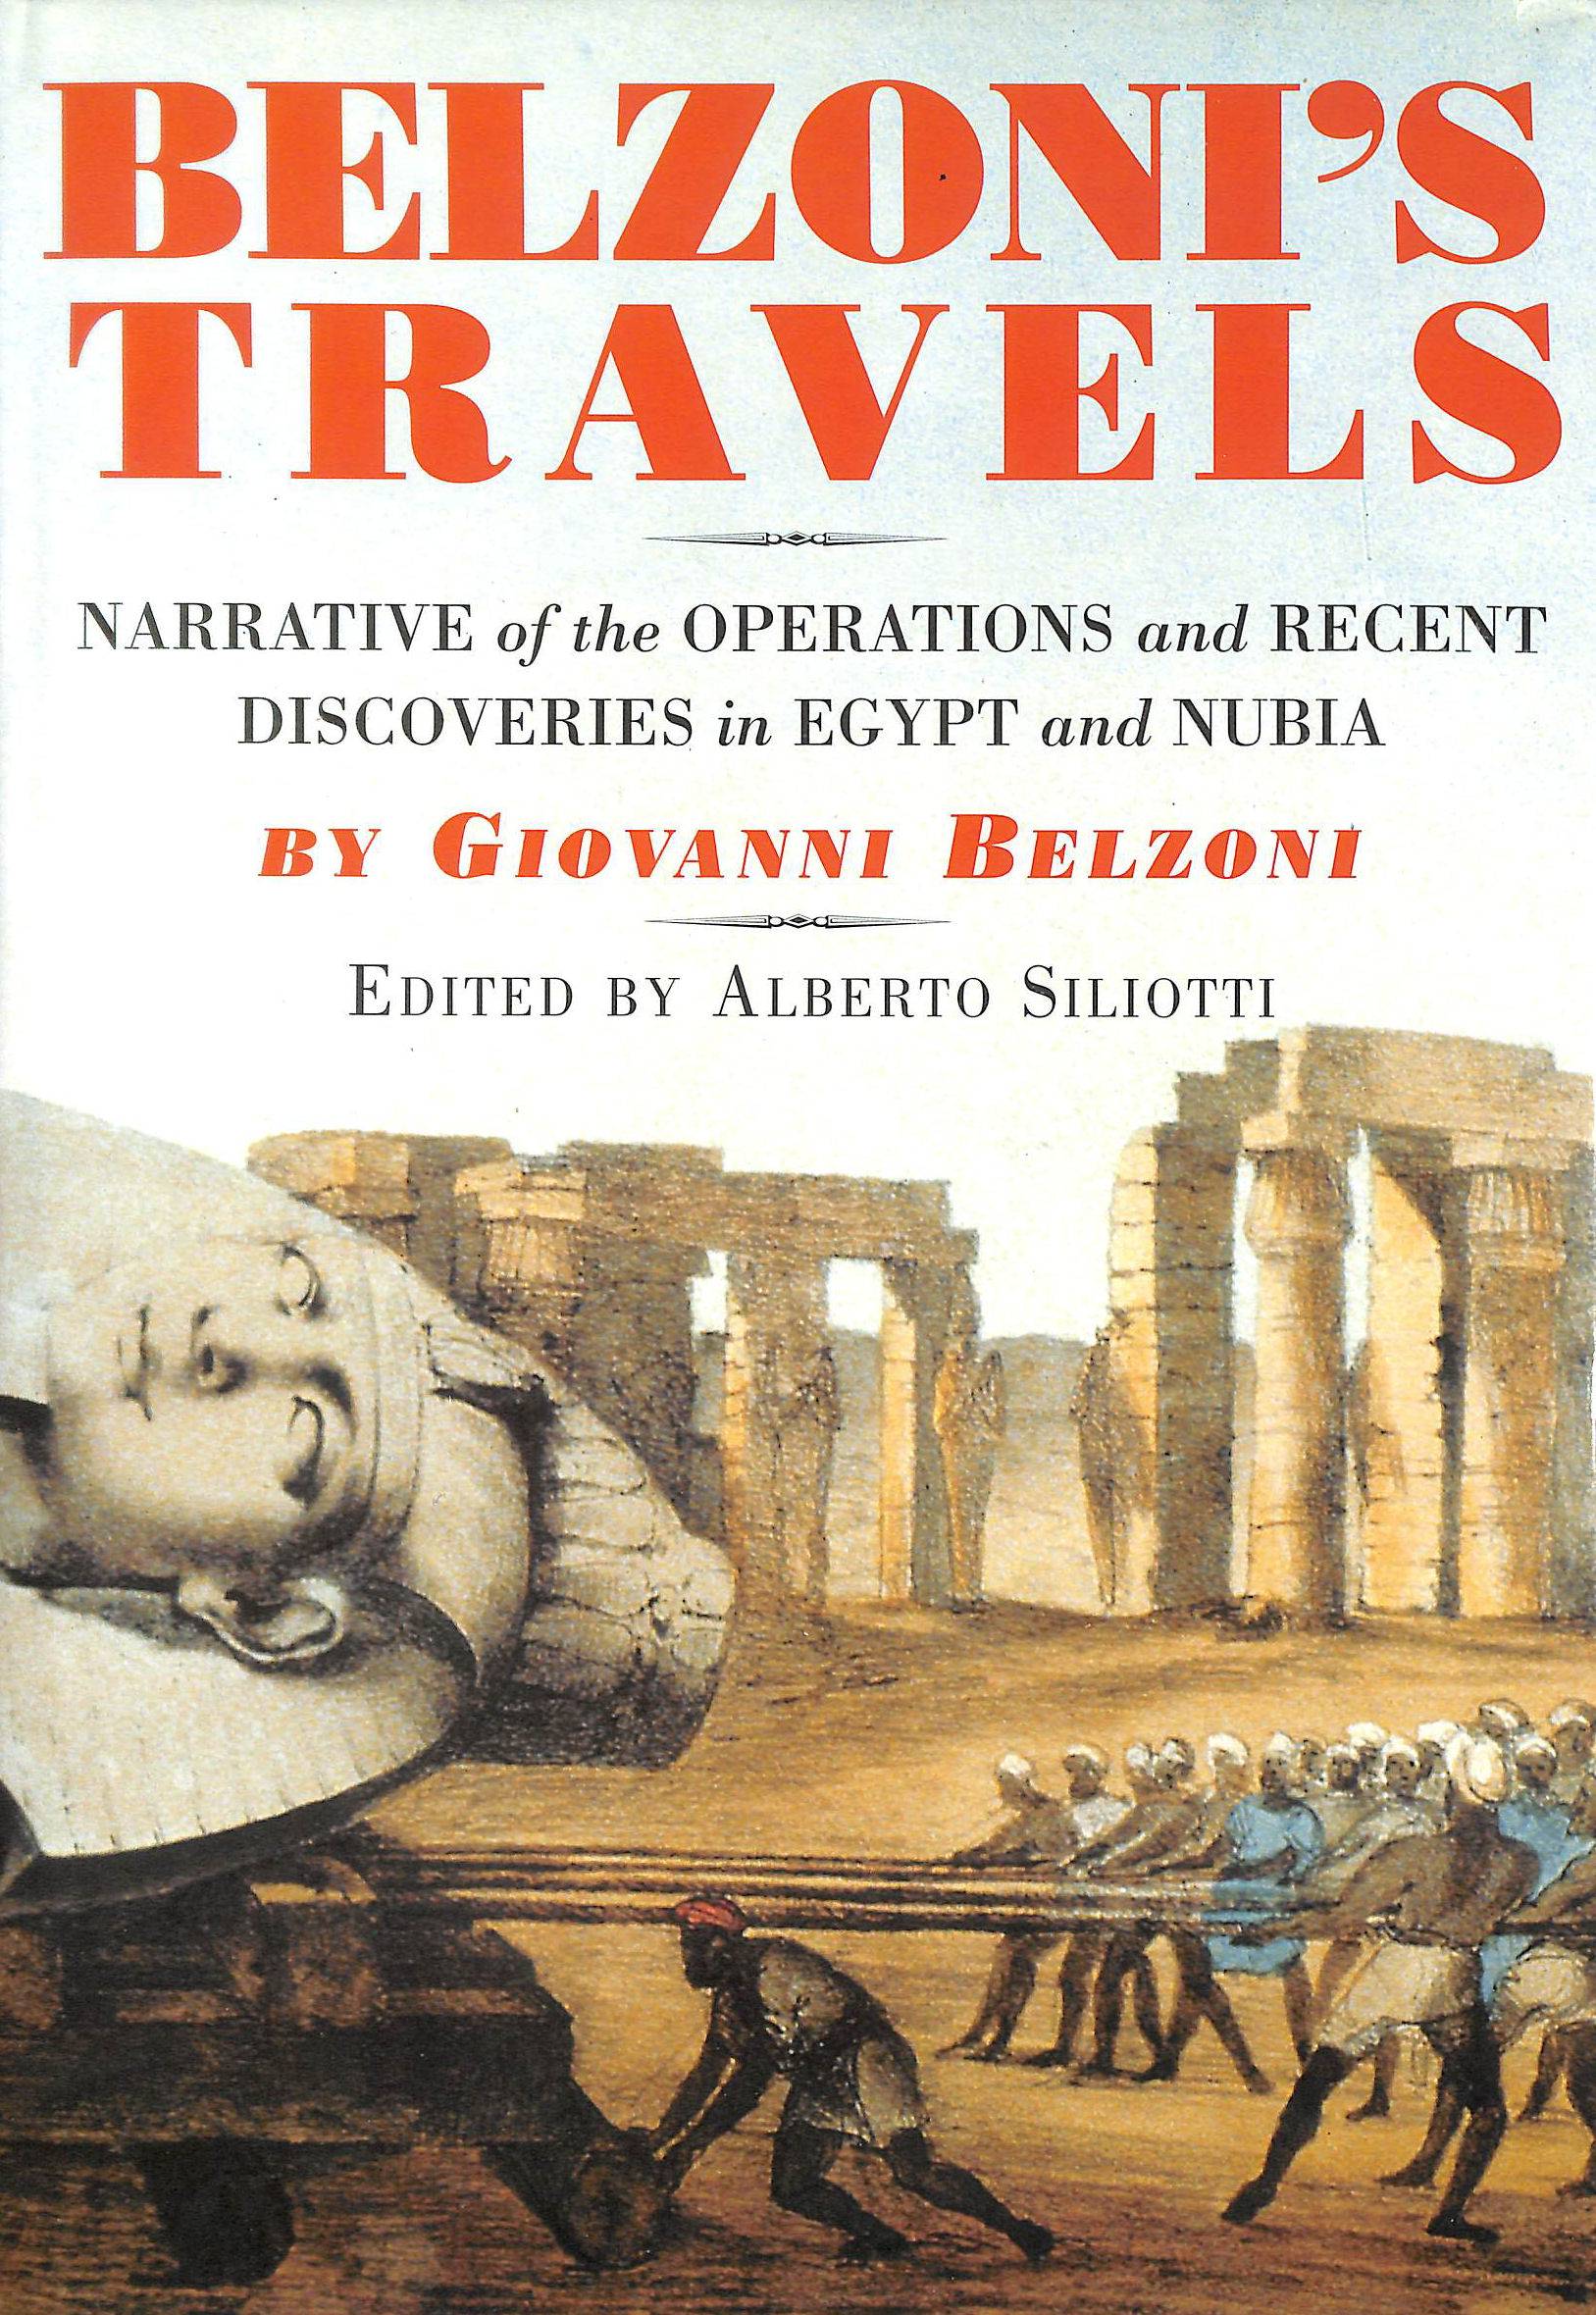 Image for Belzoni's Travels: Belzoni's Travels: Narrative of the Operations and Recent Discoveries in Egypt and Nubia